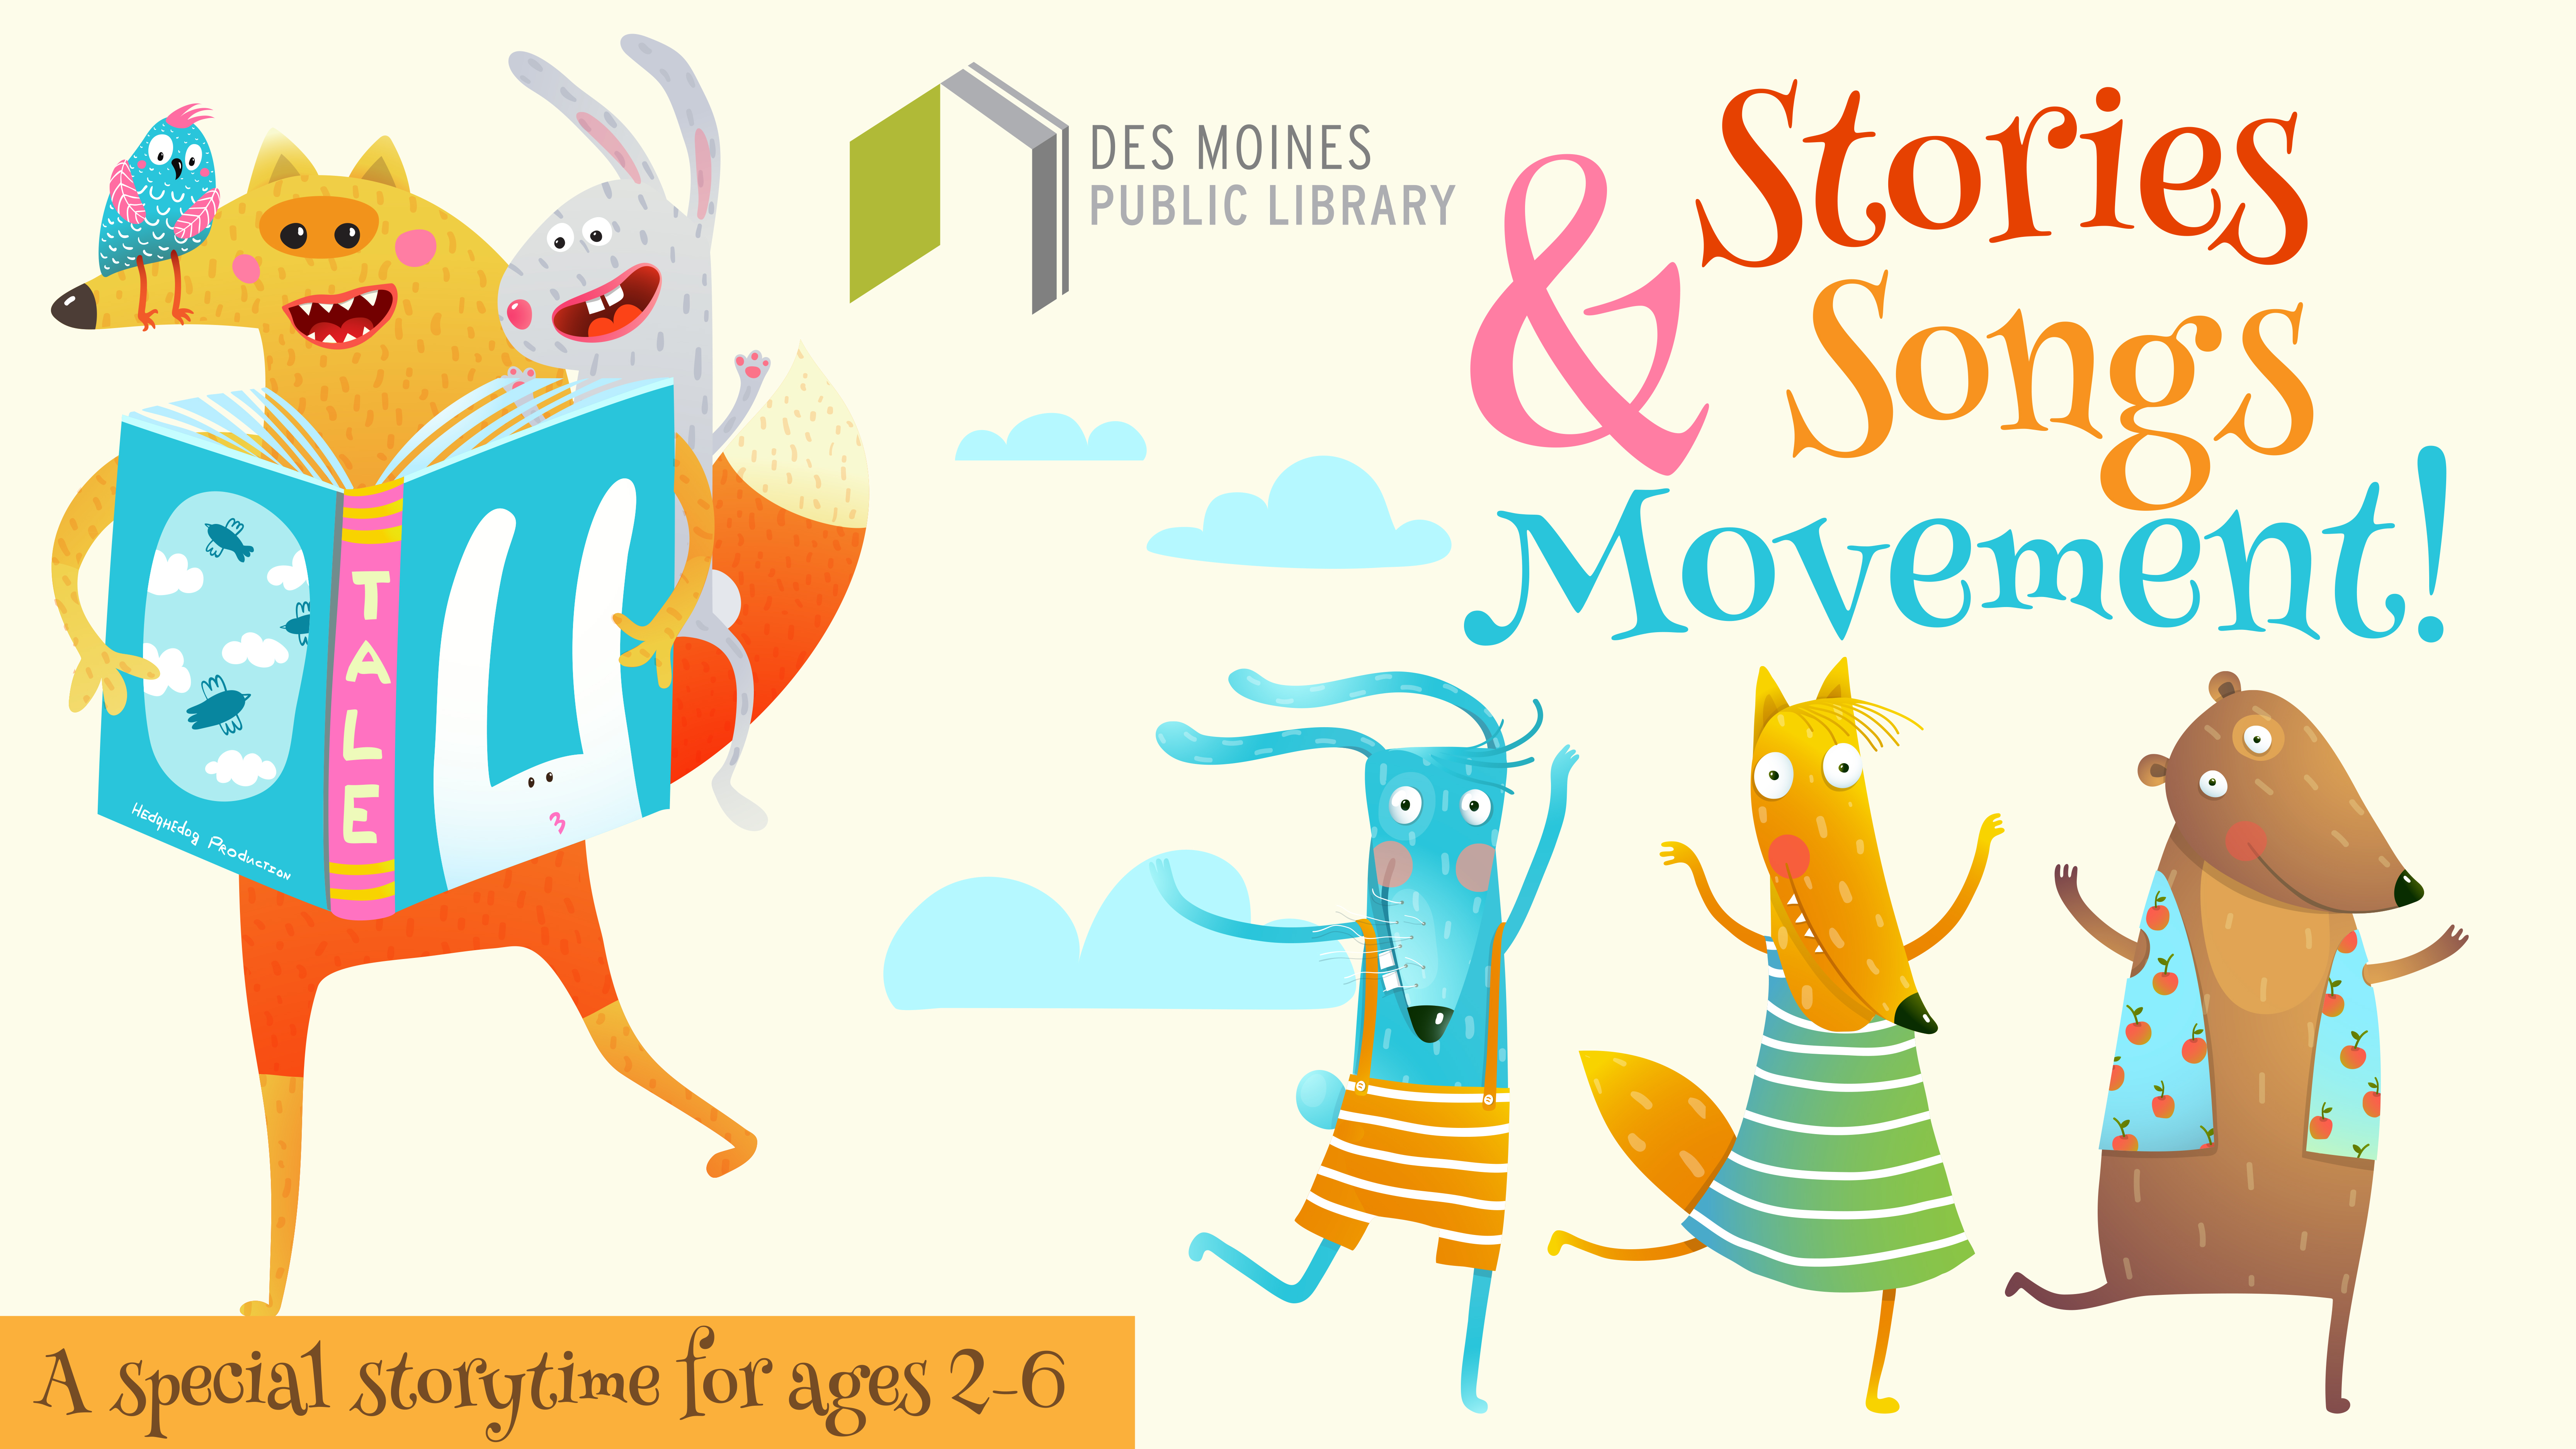 Stories, songs and Movement